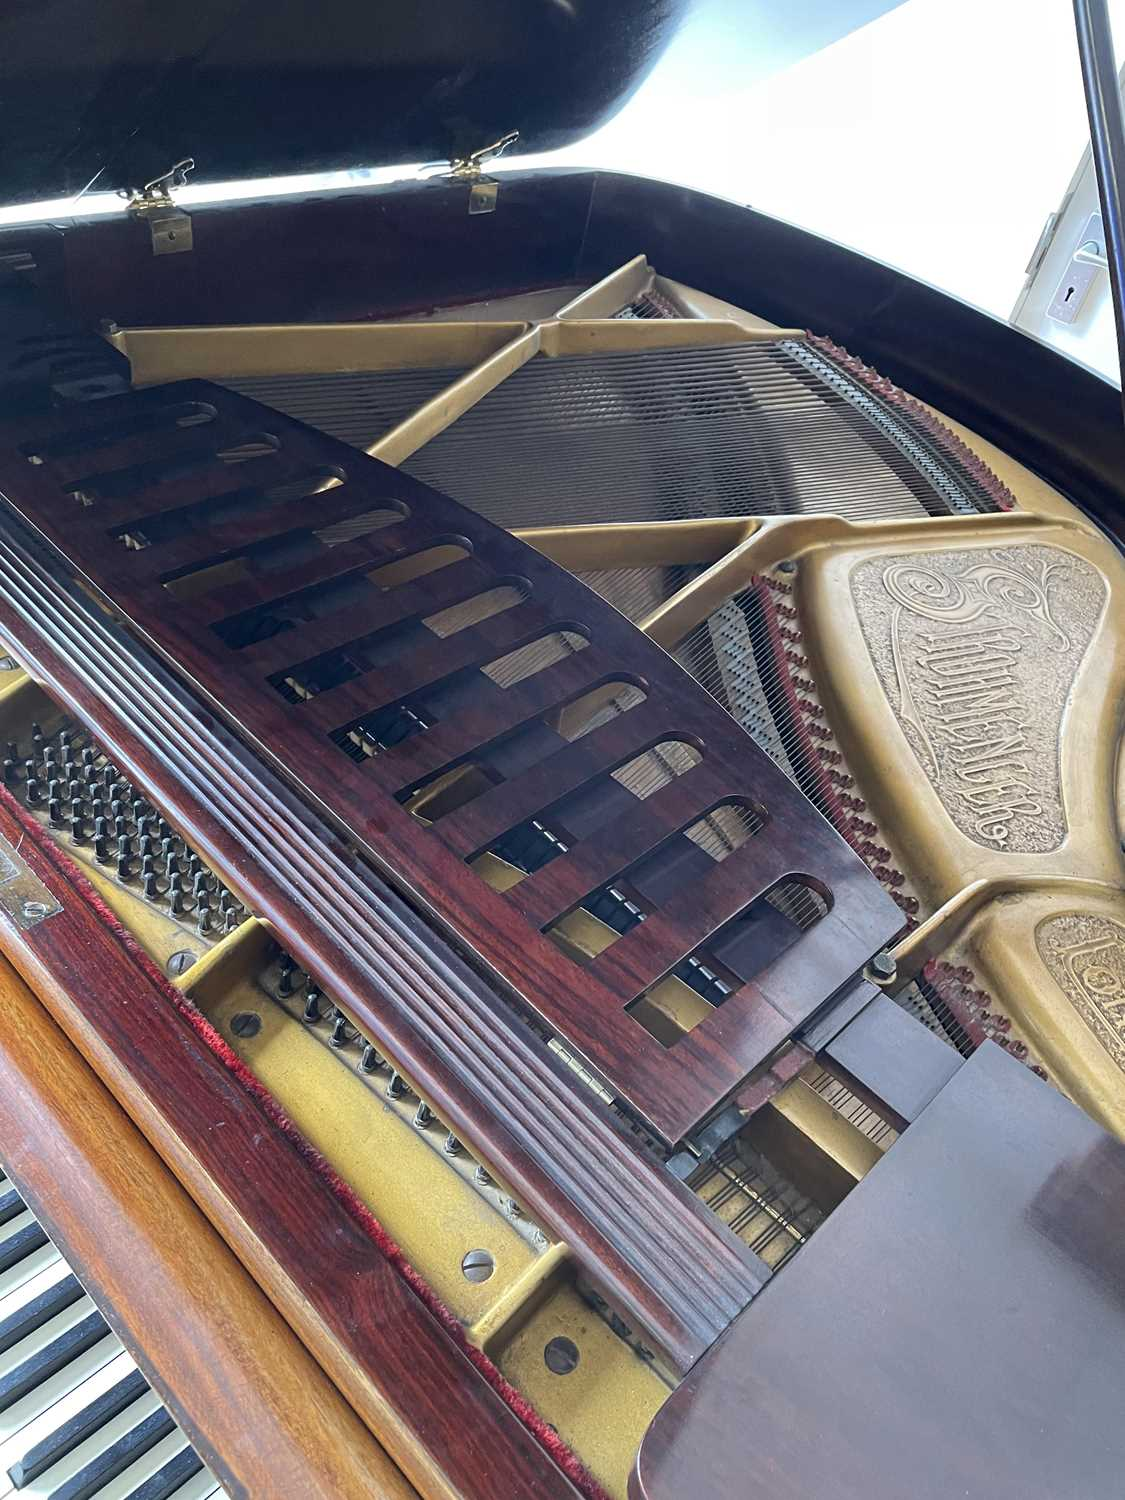 A mahogany cased baby grand piano, by John Strohmenger & Sons, London, 143 cm wide x 101 cm high x - Image 11 of 21